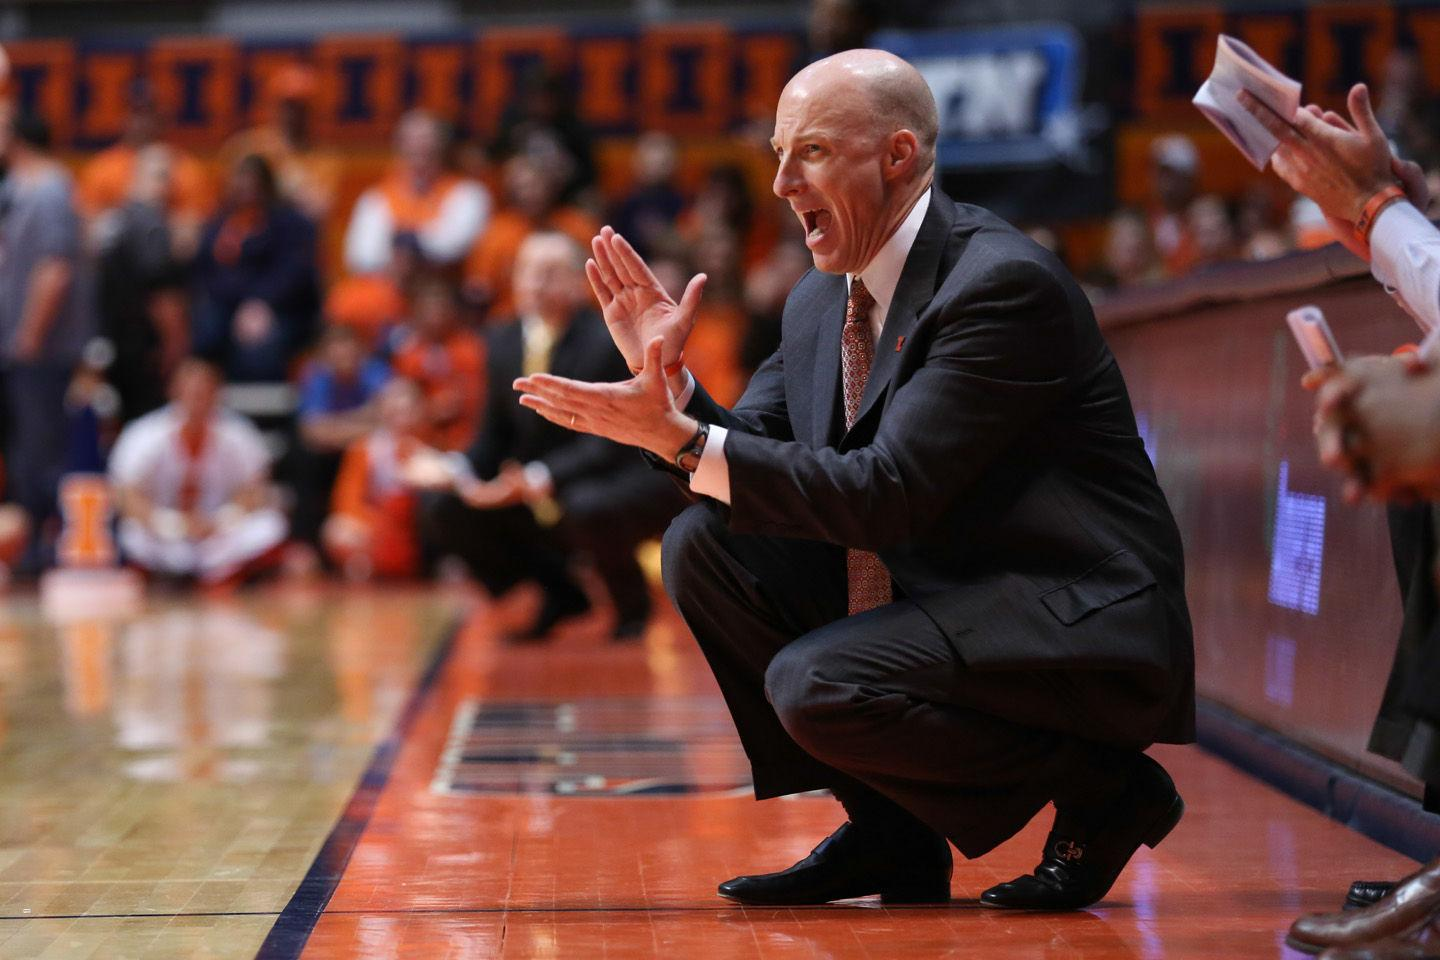 John Groce was an assistant on the 2005 Ohio State team that handed then-No. 1 Illinois its only regular season loss. Since becoming Illinois' head coach, Groceis 1-5 against Ohio State.